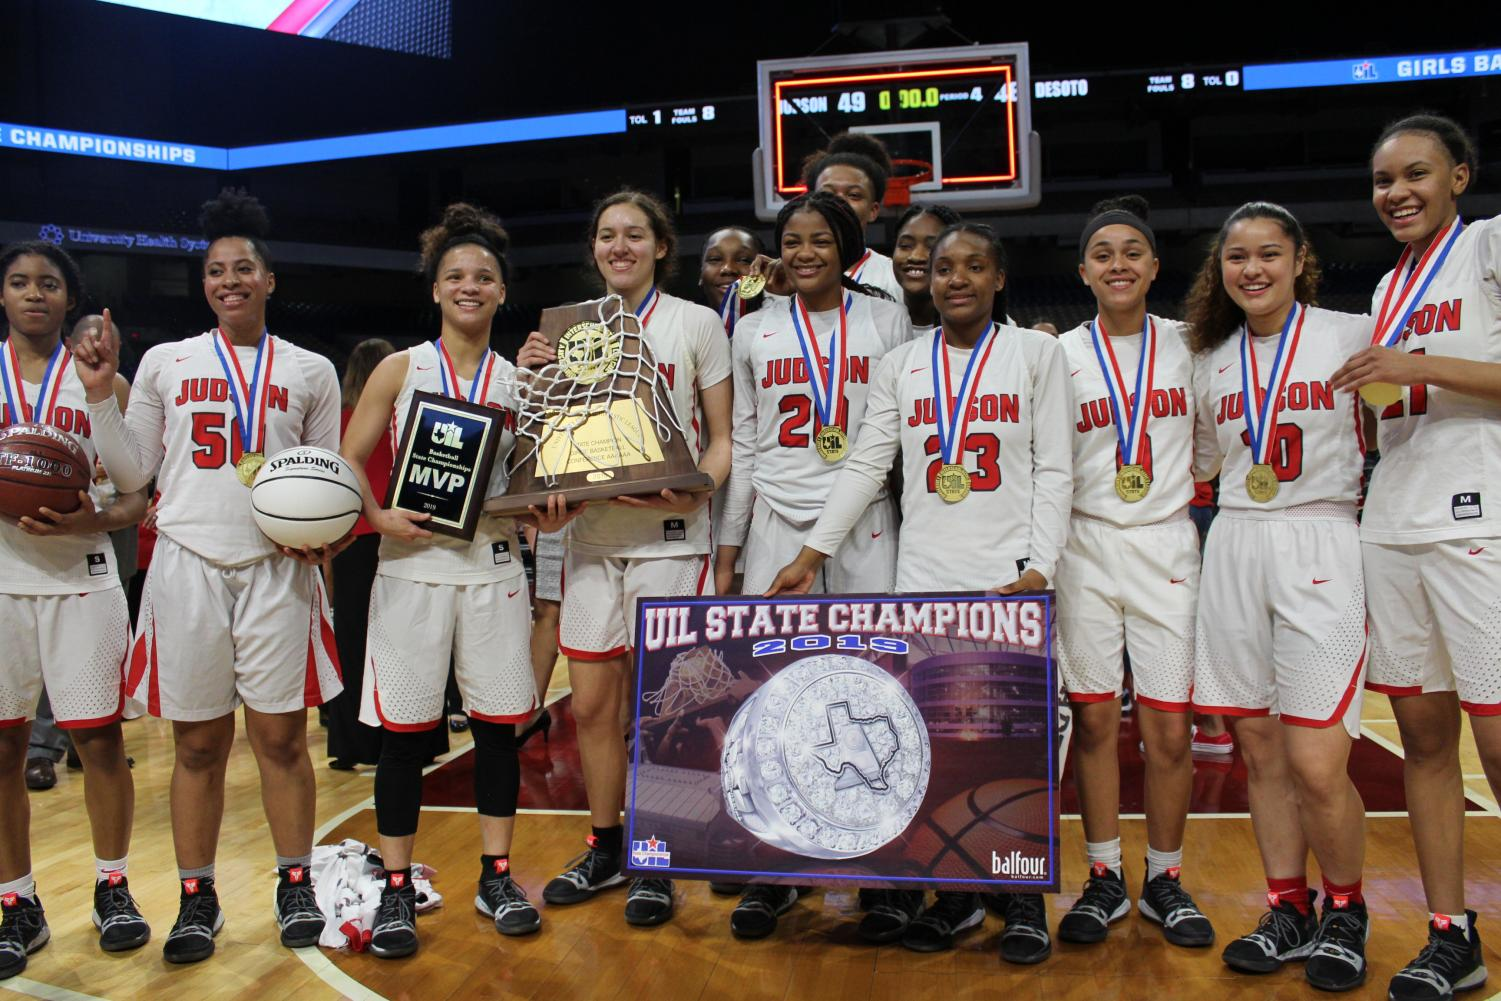 The 2018-2019 girls basketball team poses with their medals, plaque, and UIL 6A state championship poster for the media groups on the floor. This is the first girls basketball state championship at Judson.